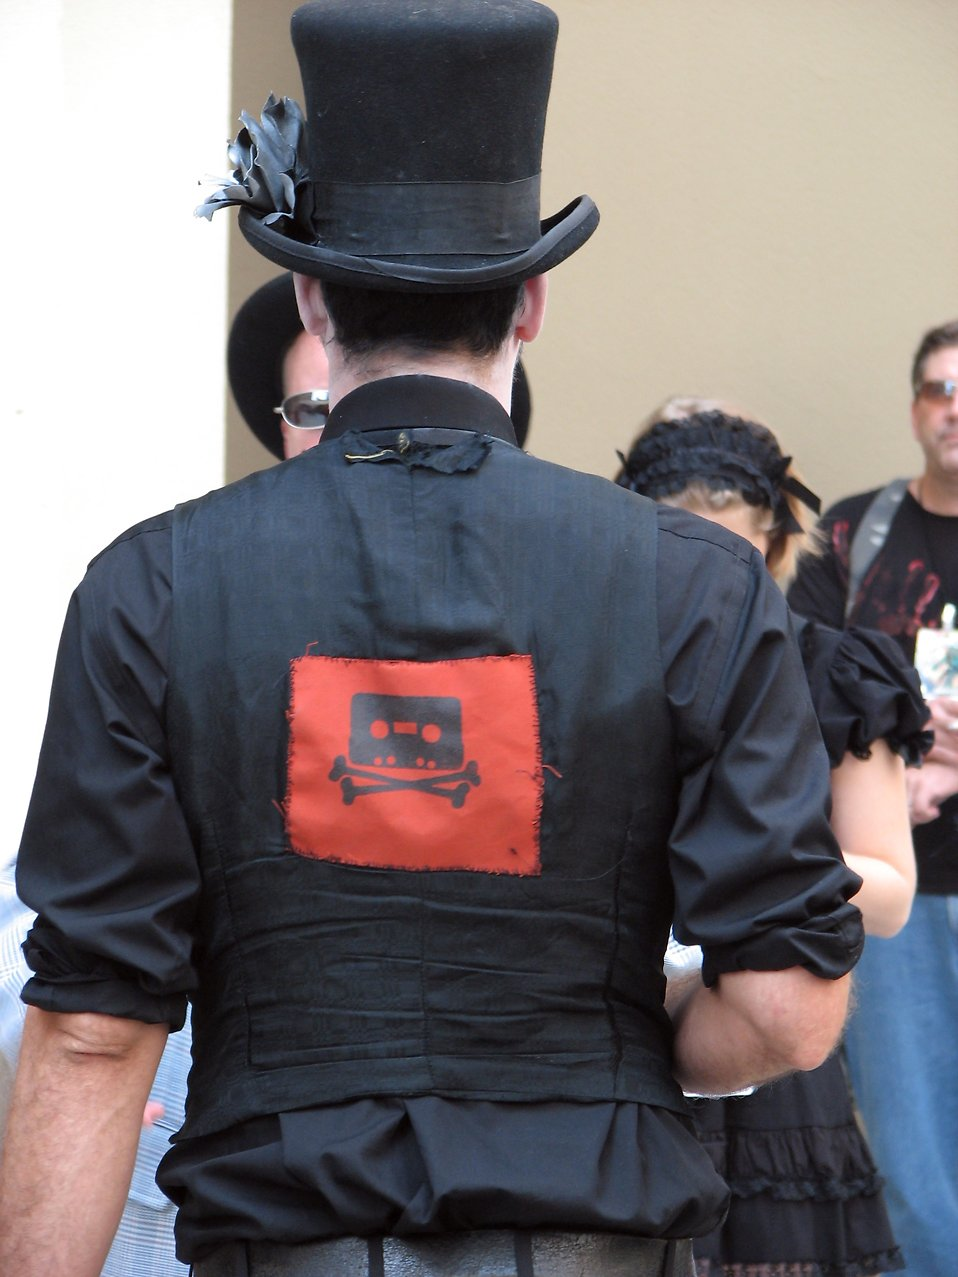 Back of a man in a tophat costume at Dragonc 2008 : Free Stock Photo